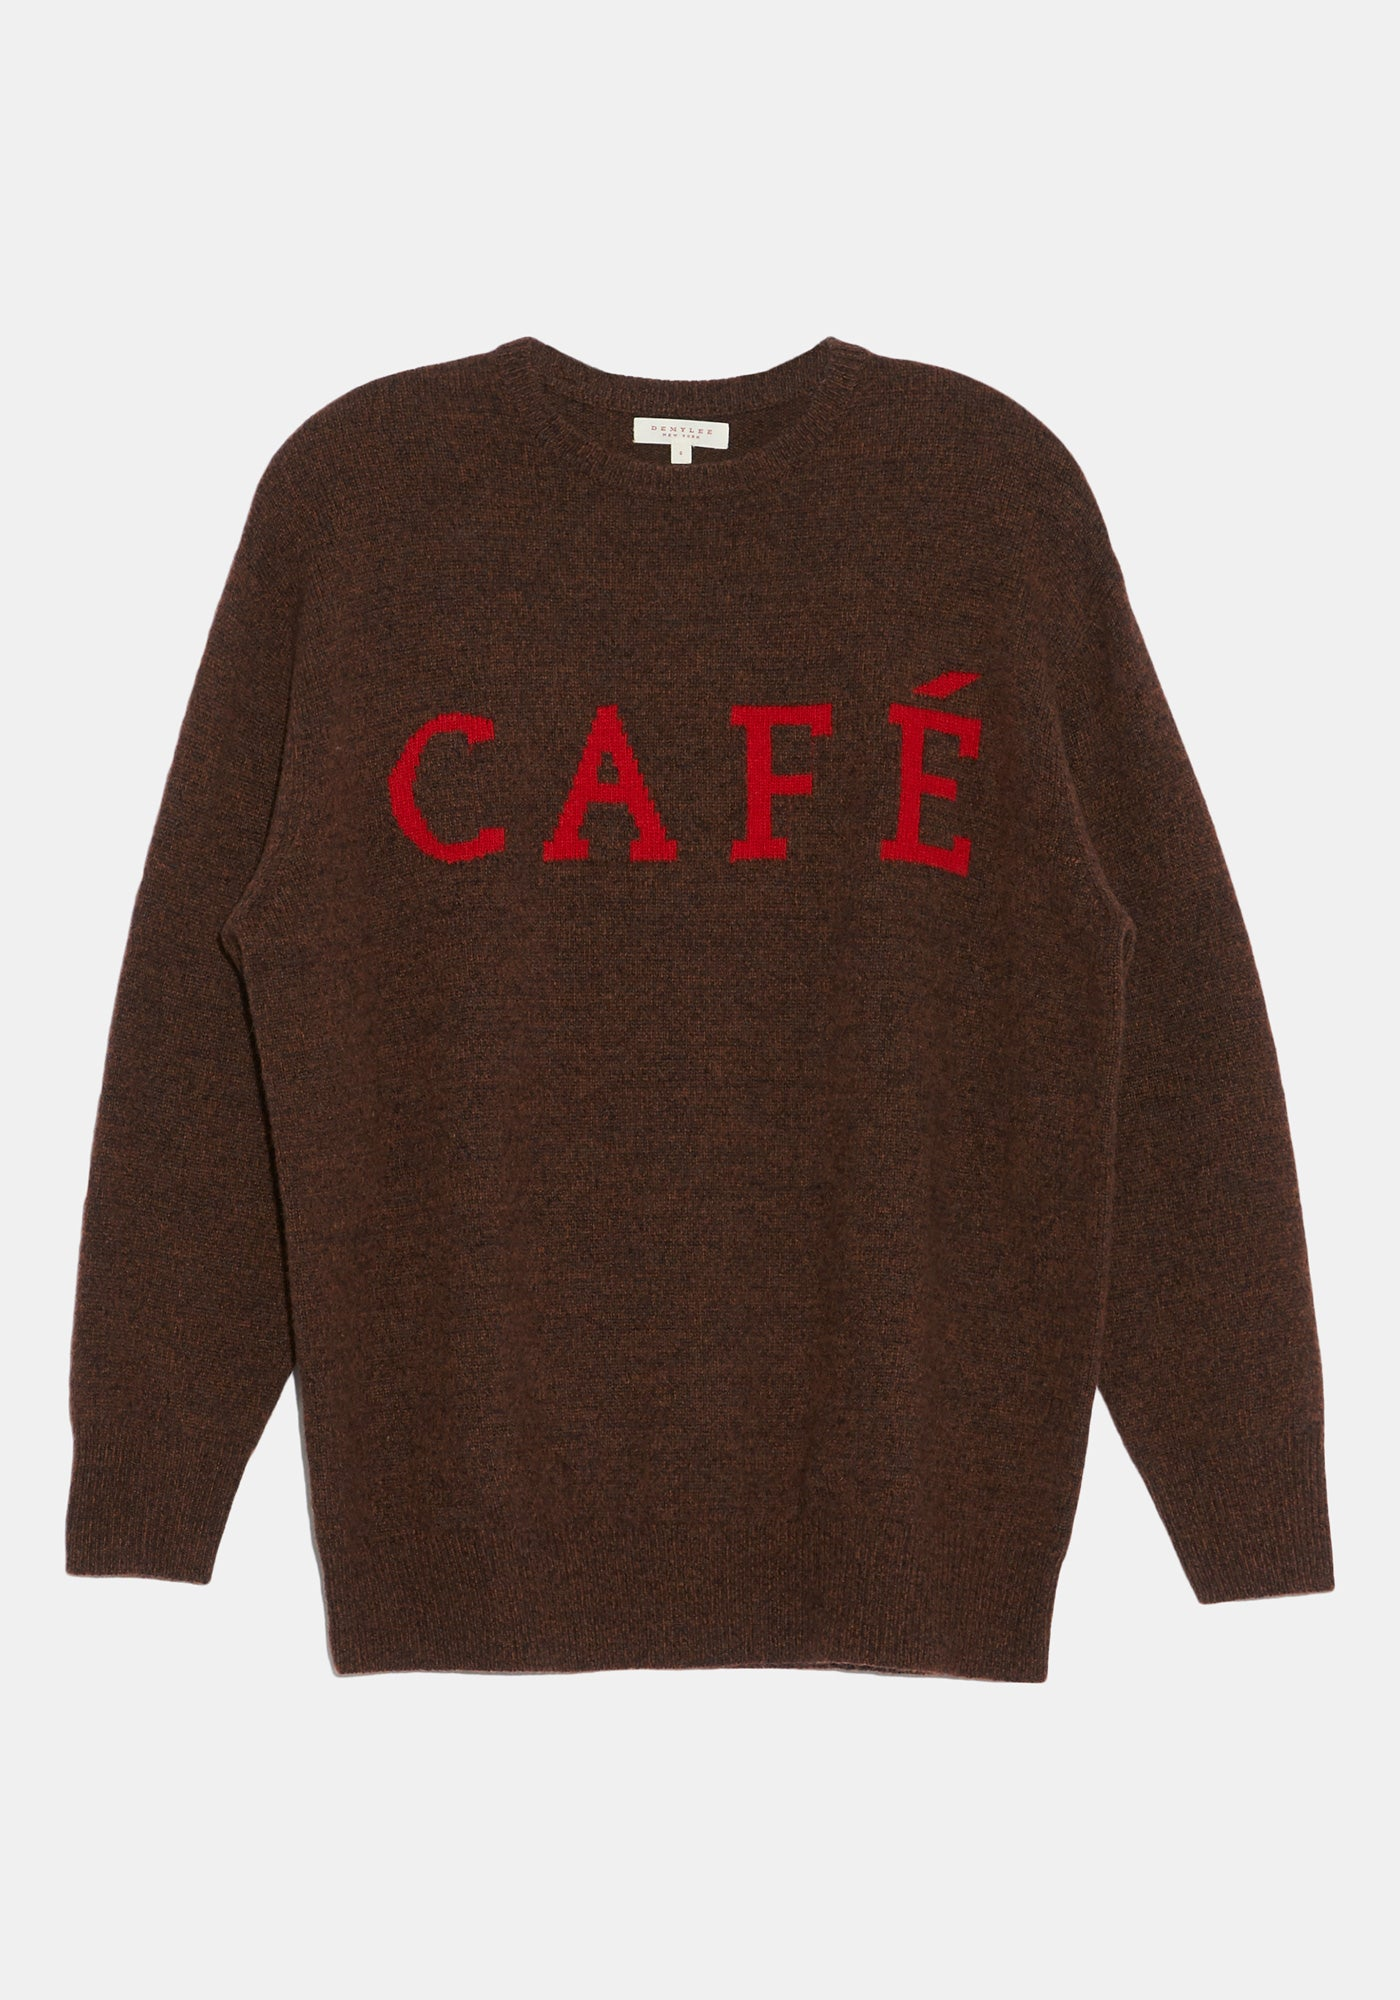 Adela Café Sweater